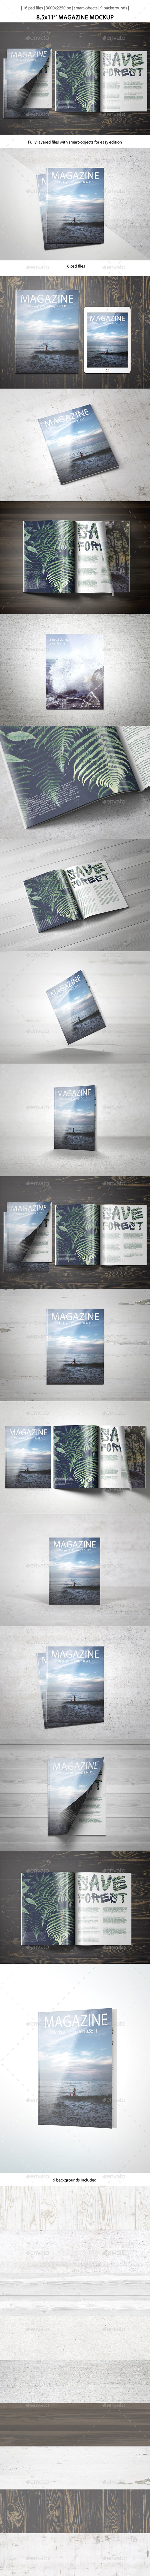 GraphicRiver 8.5x11 Magazine Mockup 10243452